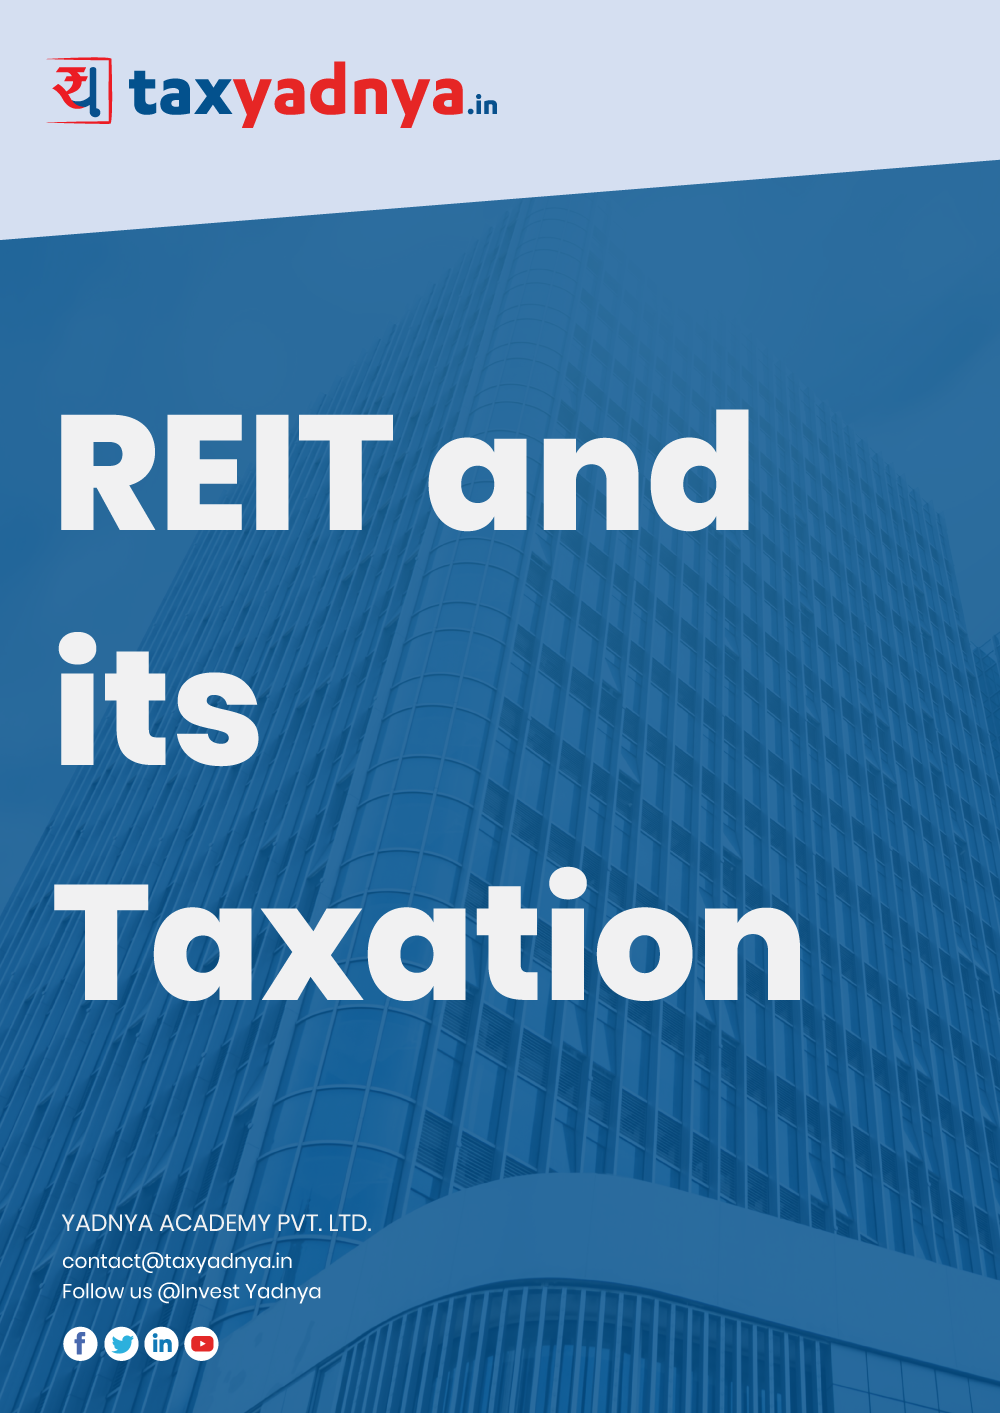 This eBook contains details about REIT (Real Estate Investment Trust). REITs are new concept in India and the first REIT was recently launched in March 2019 which was well received by analysts and investors. This eBook will give you all the details about REITs which an investor should know before investing in this new asset. Special focus is given to explain the Taxation on REIT investment as it is very different from other assets. REIT taxation is explained with multiple examples.